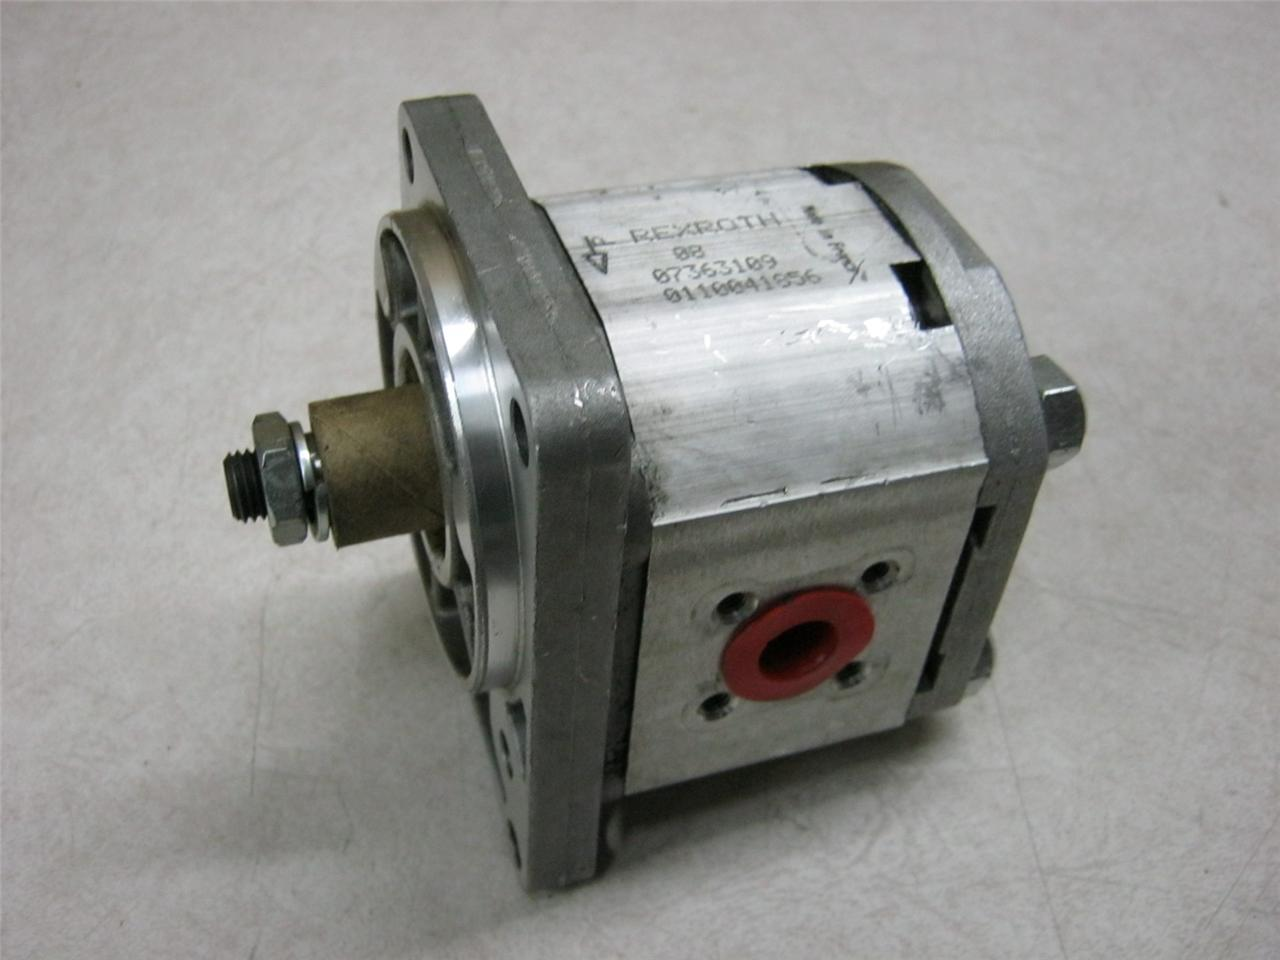 Rexroth Hydraulic Pump | Daves Industrial Surplus LLC: www.davesindustrialsurplus.com/rexroth-hydraulic-pump-0856